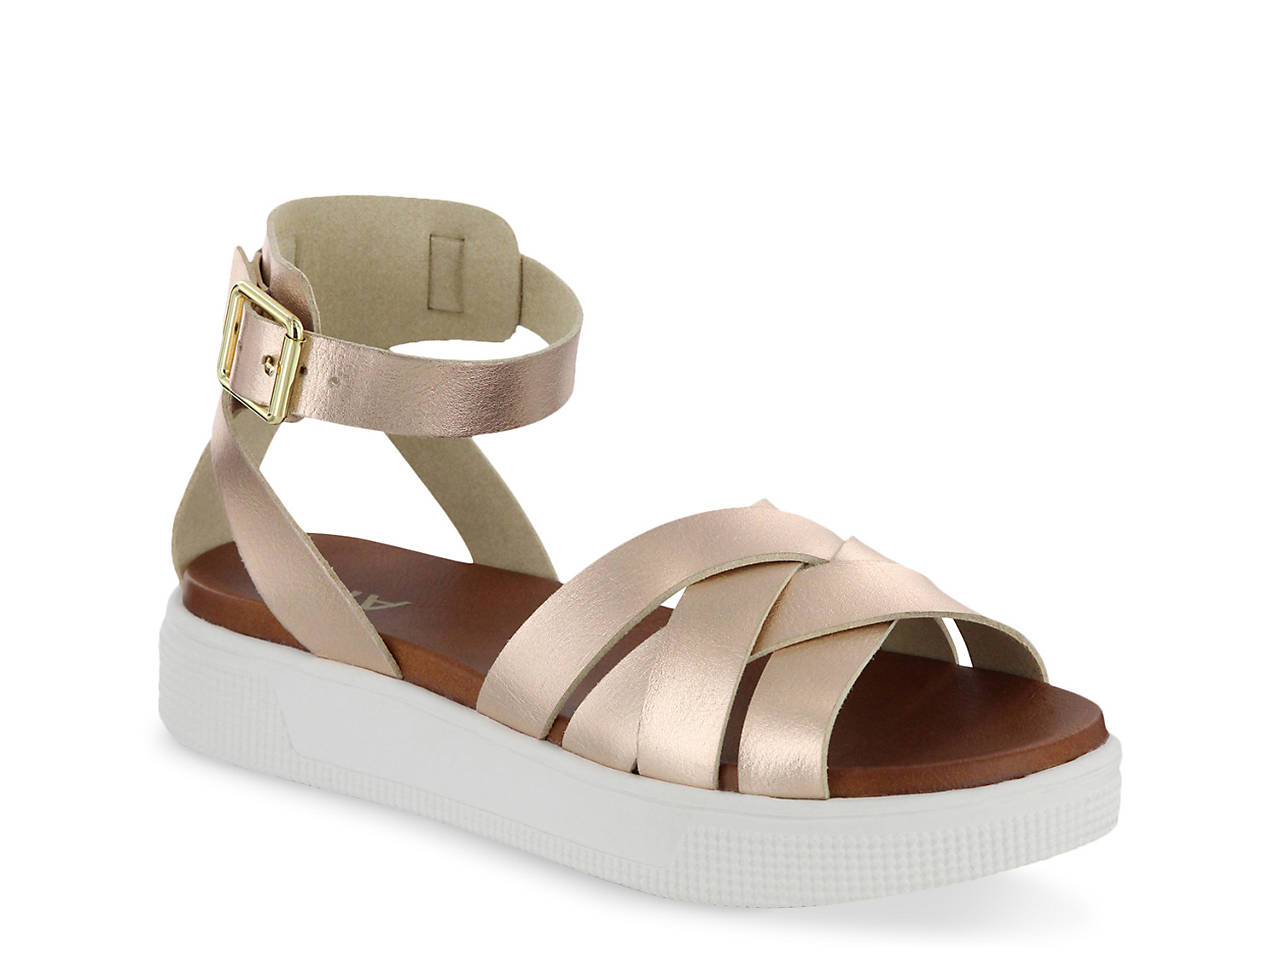 900df130691 Mia Mia Valarie Platform Sandal Women s Shoes